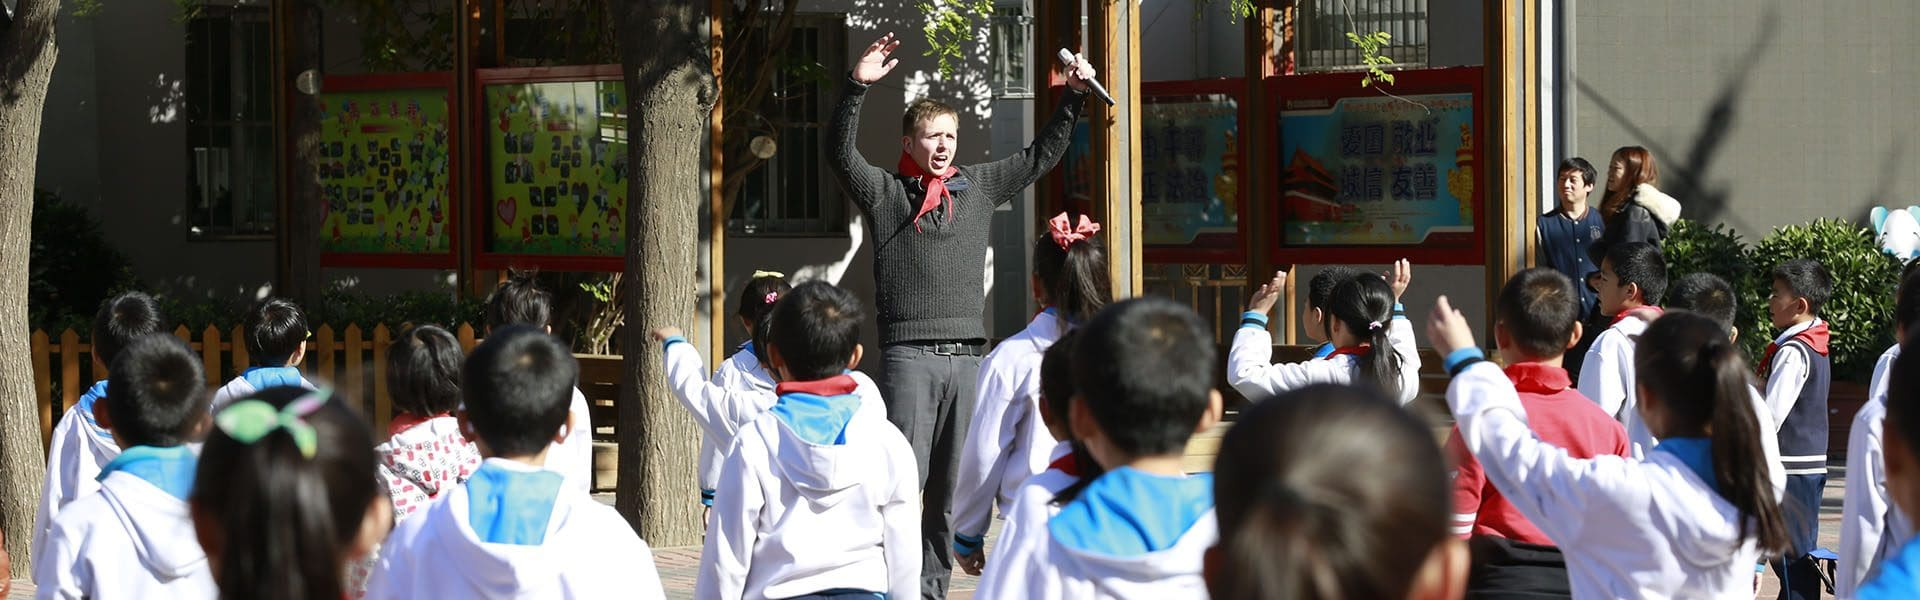 A man in front of many chinese children playing games